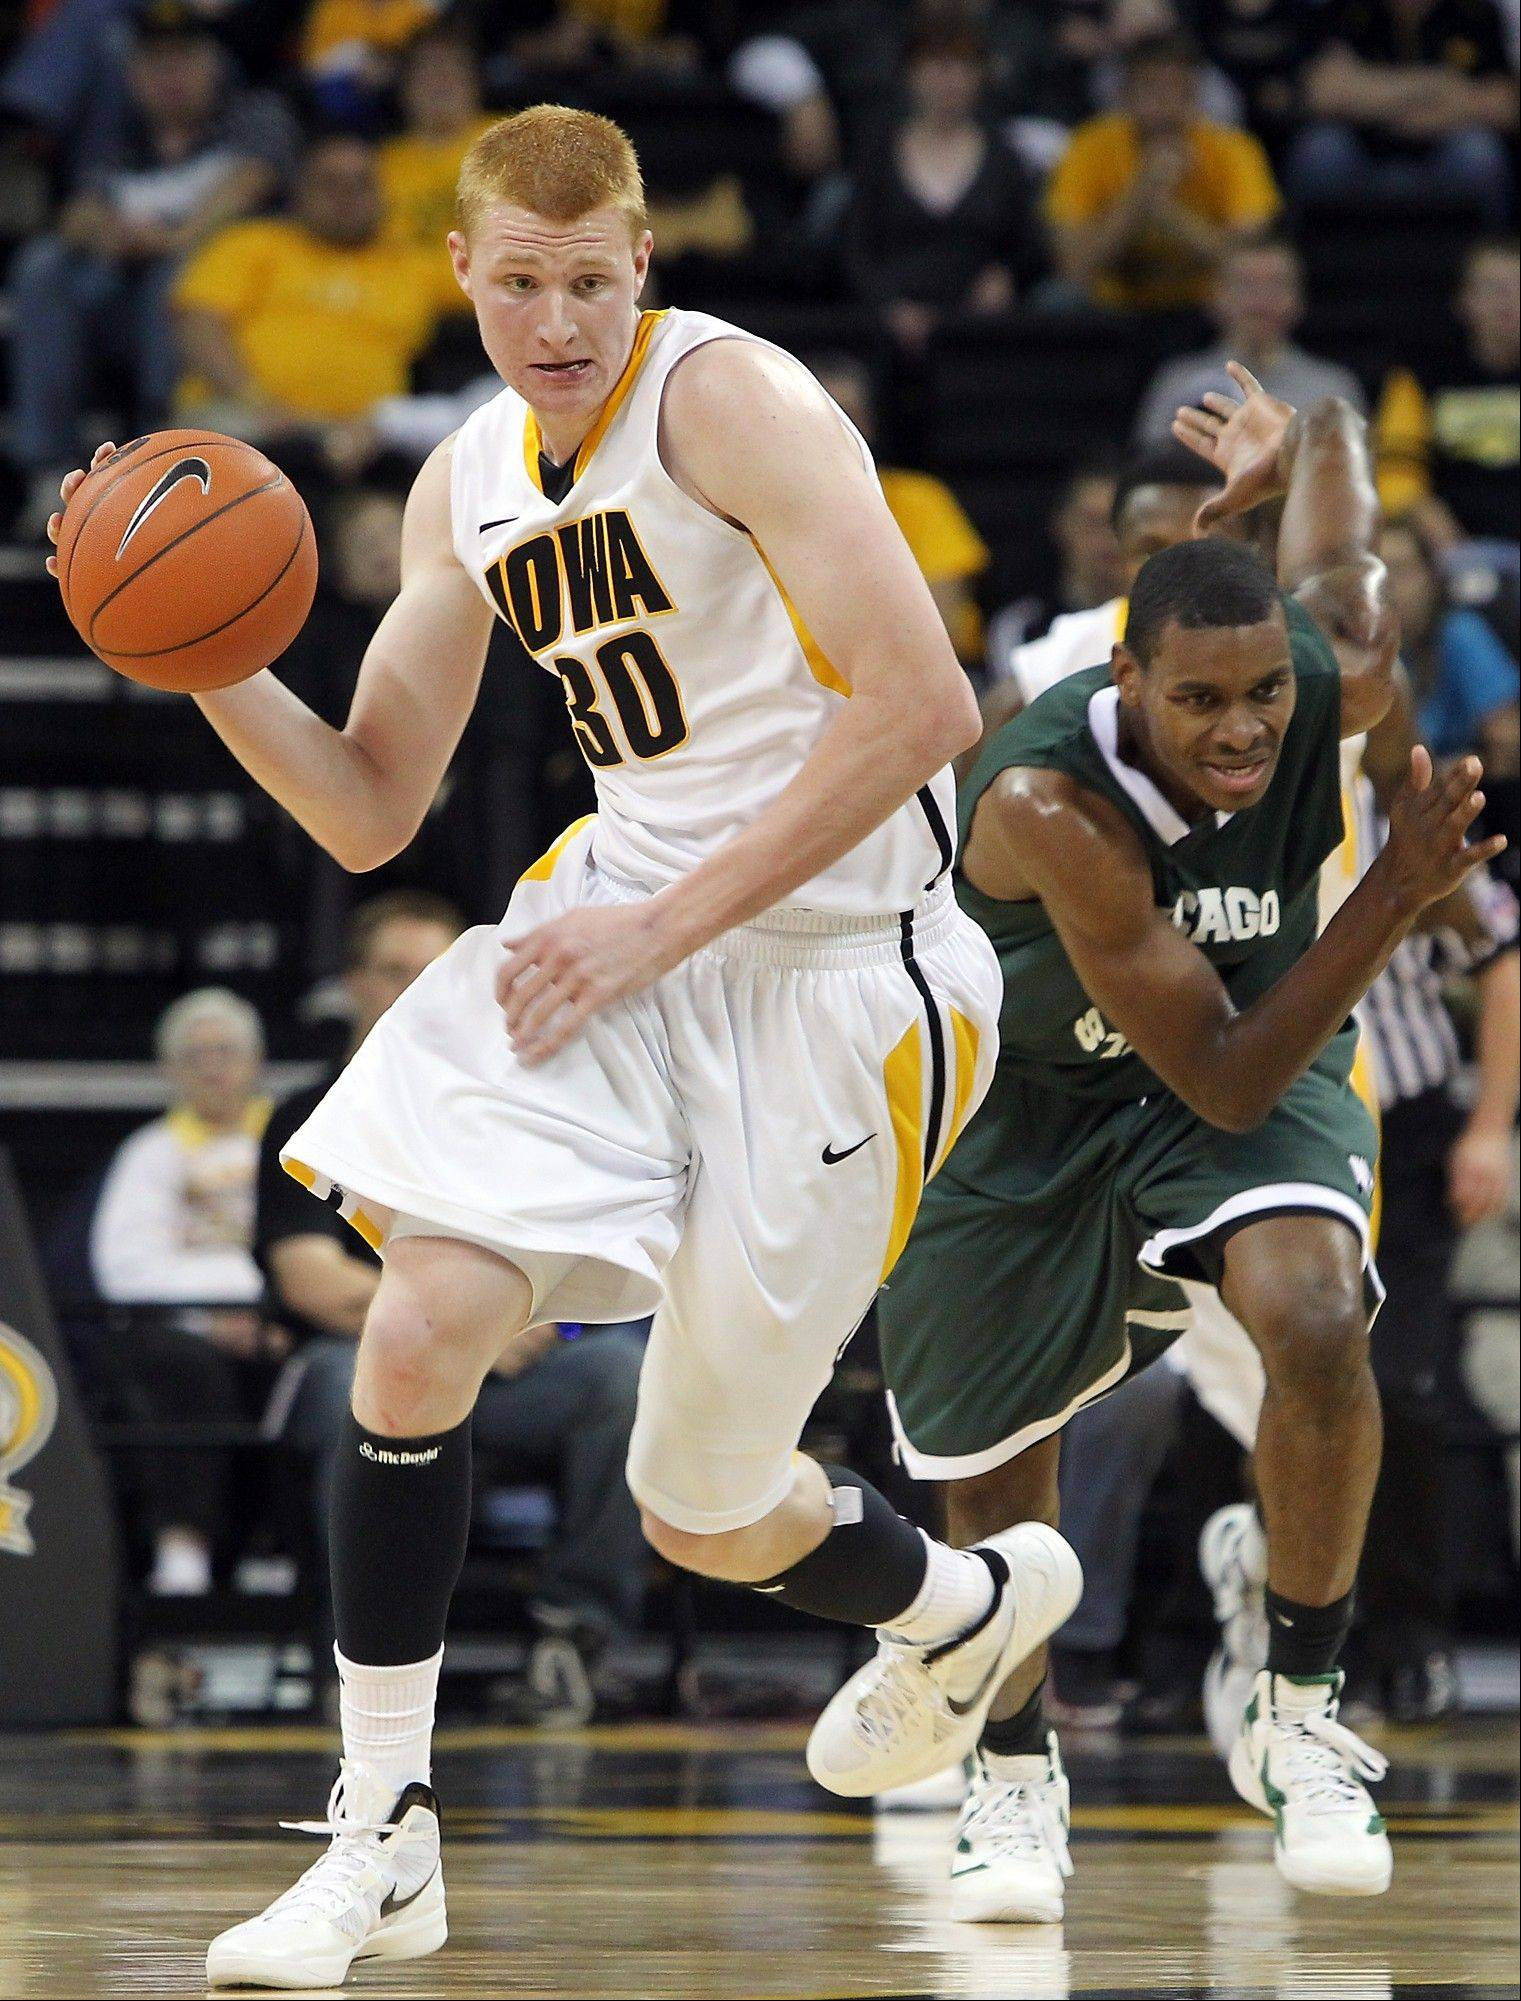 Optimistic Hawkeyes eager for NCAA tournament bid